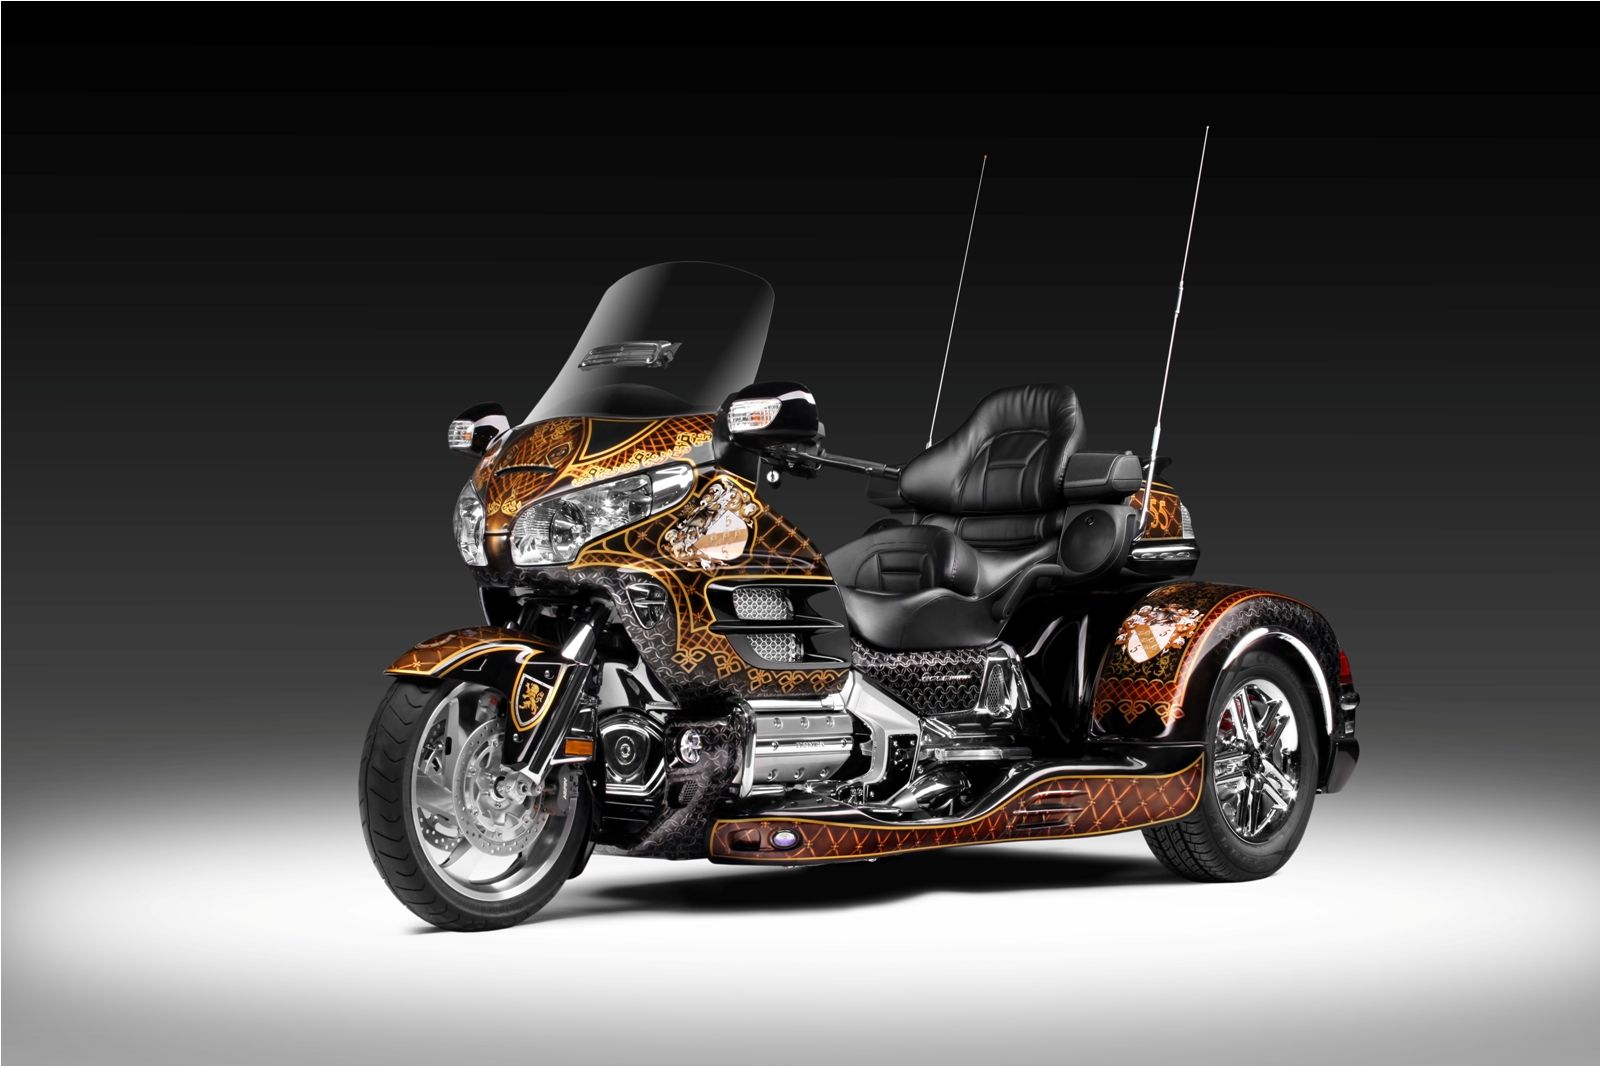 trike honda goldwing 1800 honda gold wing trike pinterest motorr der. Black Bedroom Furniture Sets. Home Design Ideas